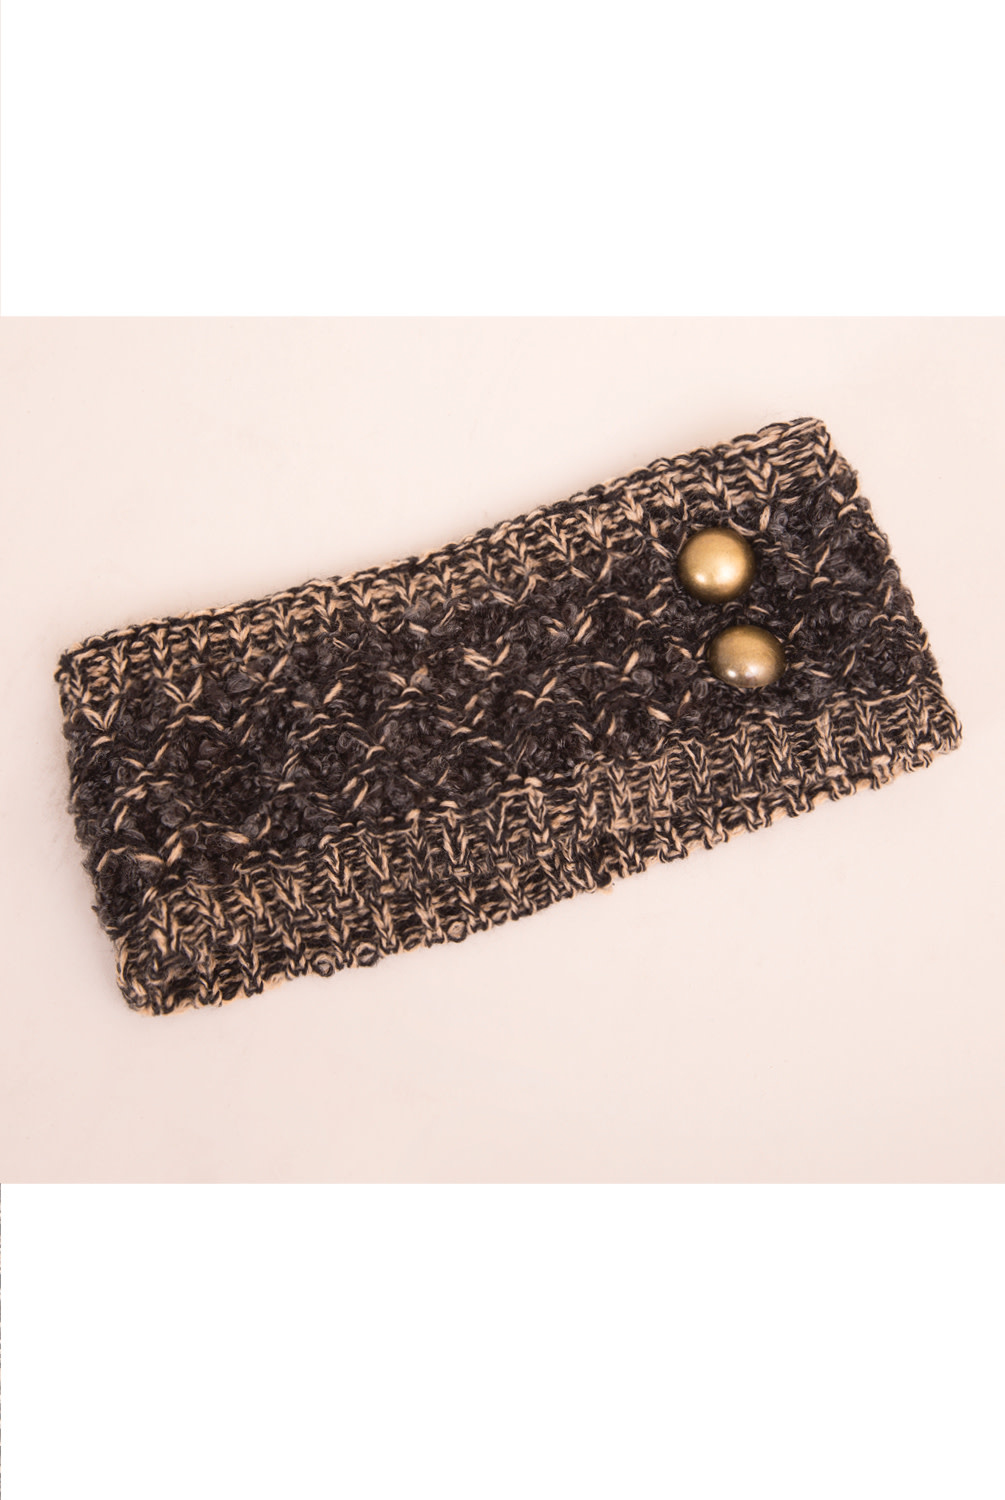 Simply Noelle Calico Headband (3-Colors) 75% Off Now $3.99